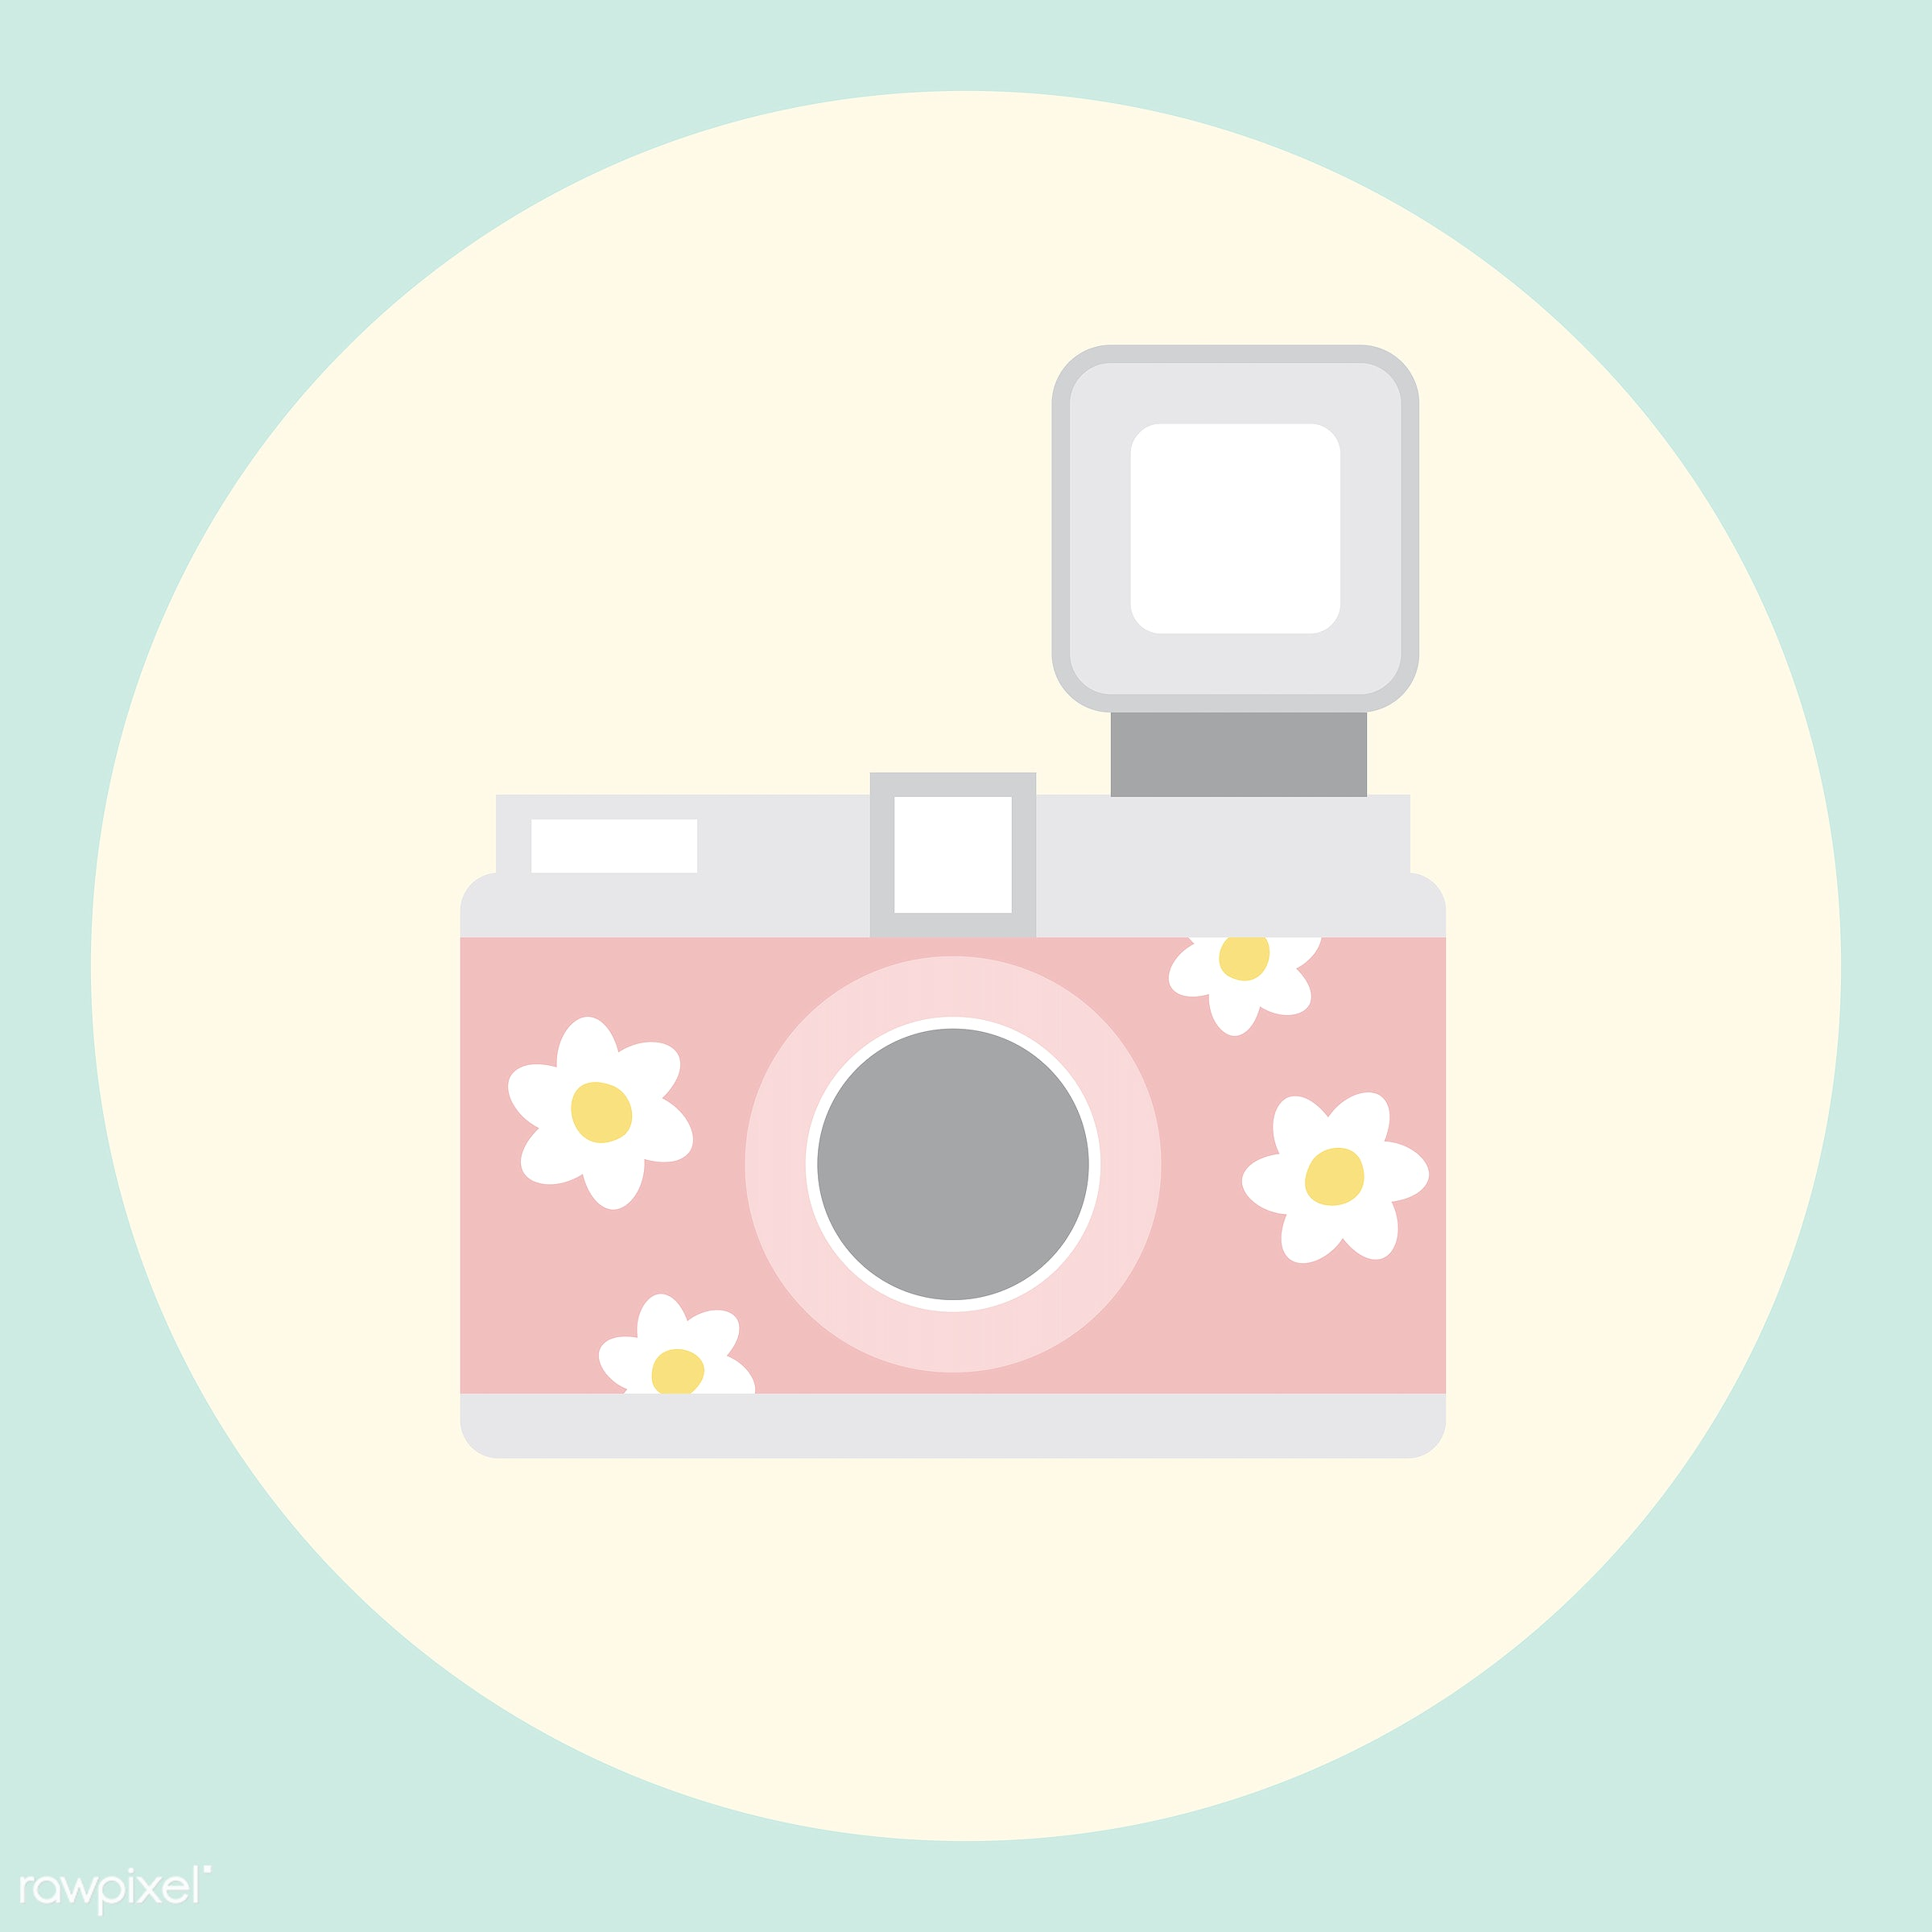 vector, illustration, graphic, cute, sweet, girly, pastel, camera, analog, feminine, colorful, pastel colored